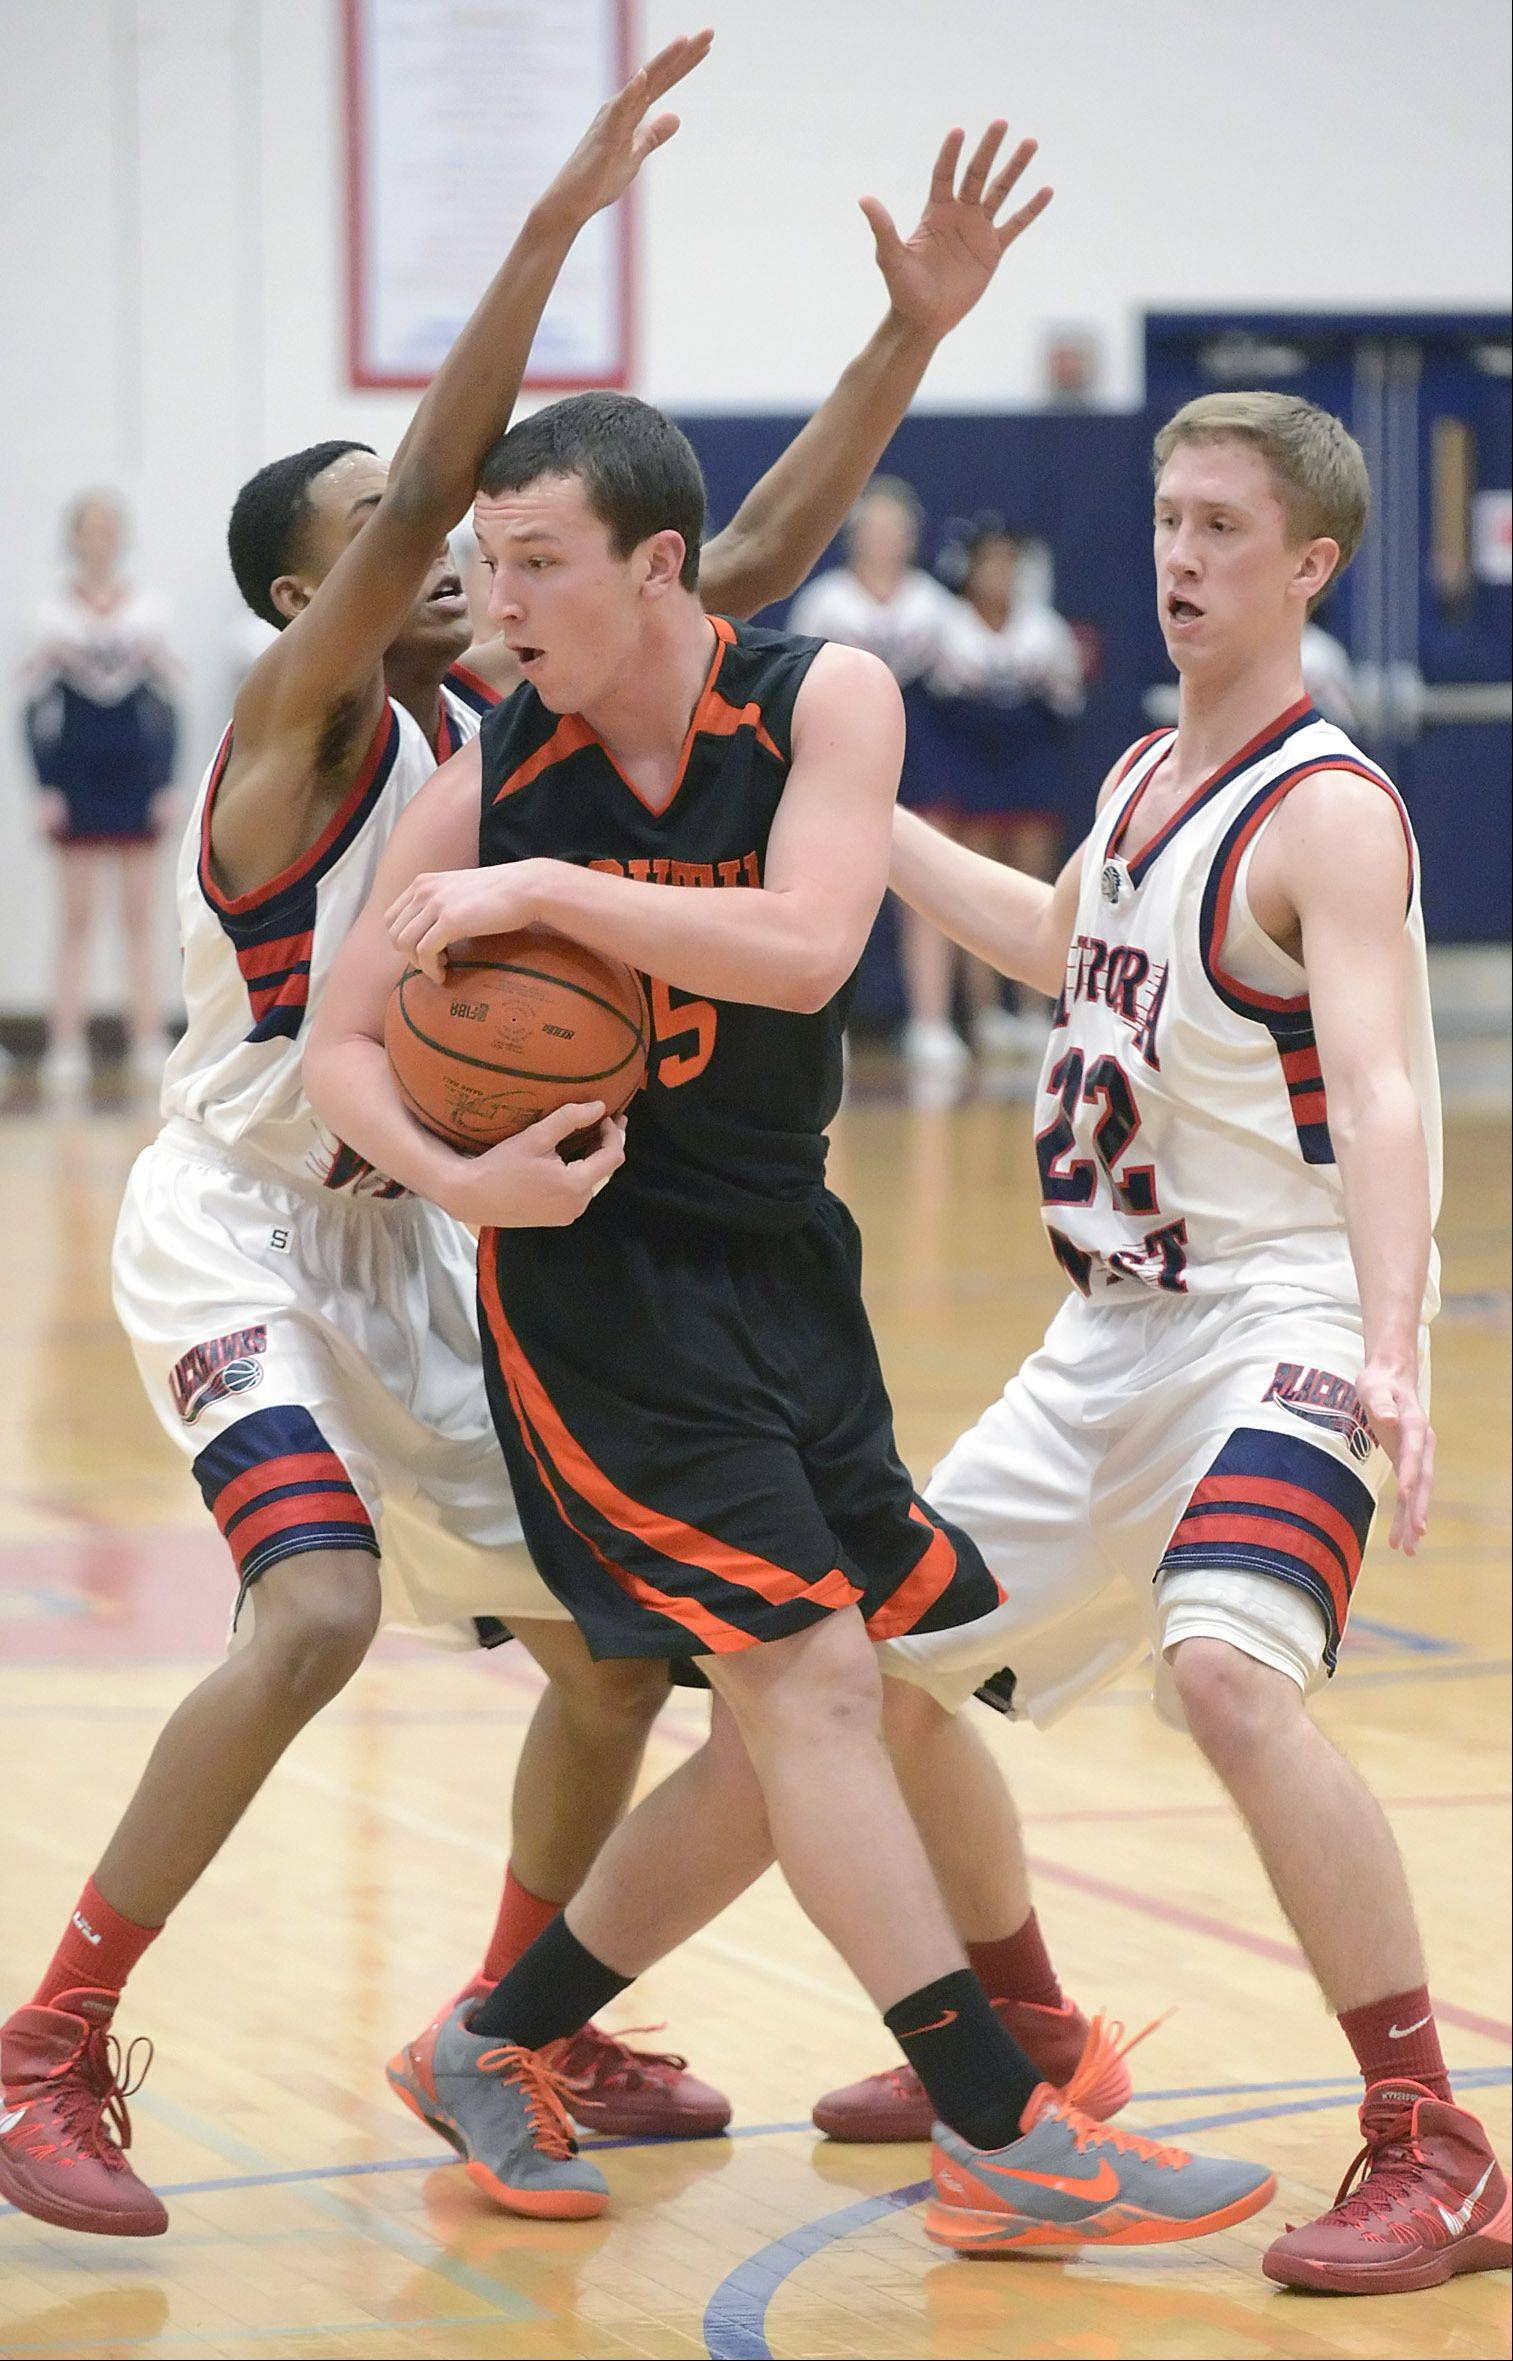 Wheaton Warrenville South's Joe Metzger is swarmed by West Aurora's Antwan Ahamd, left, and Tommy Koth, right, in the third quarter on Tuesday, February 4.